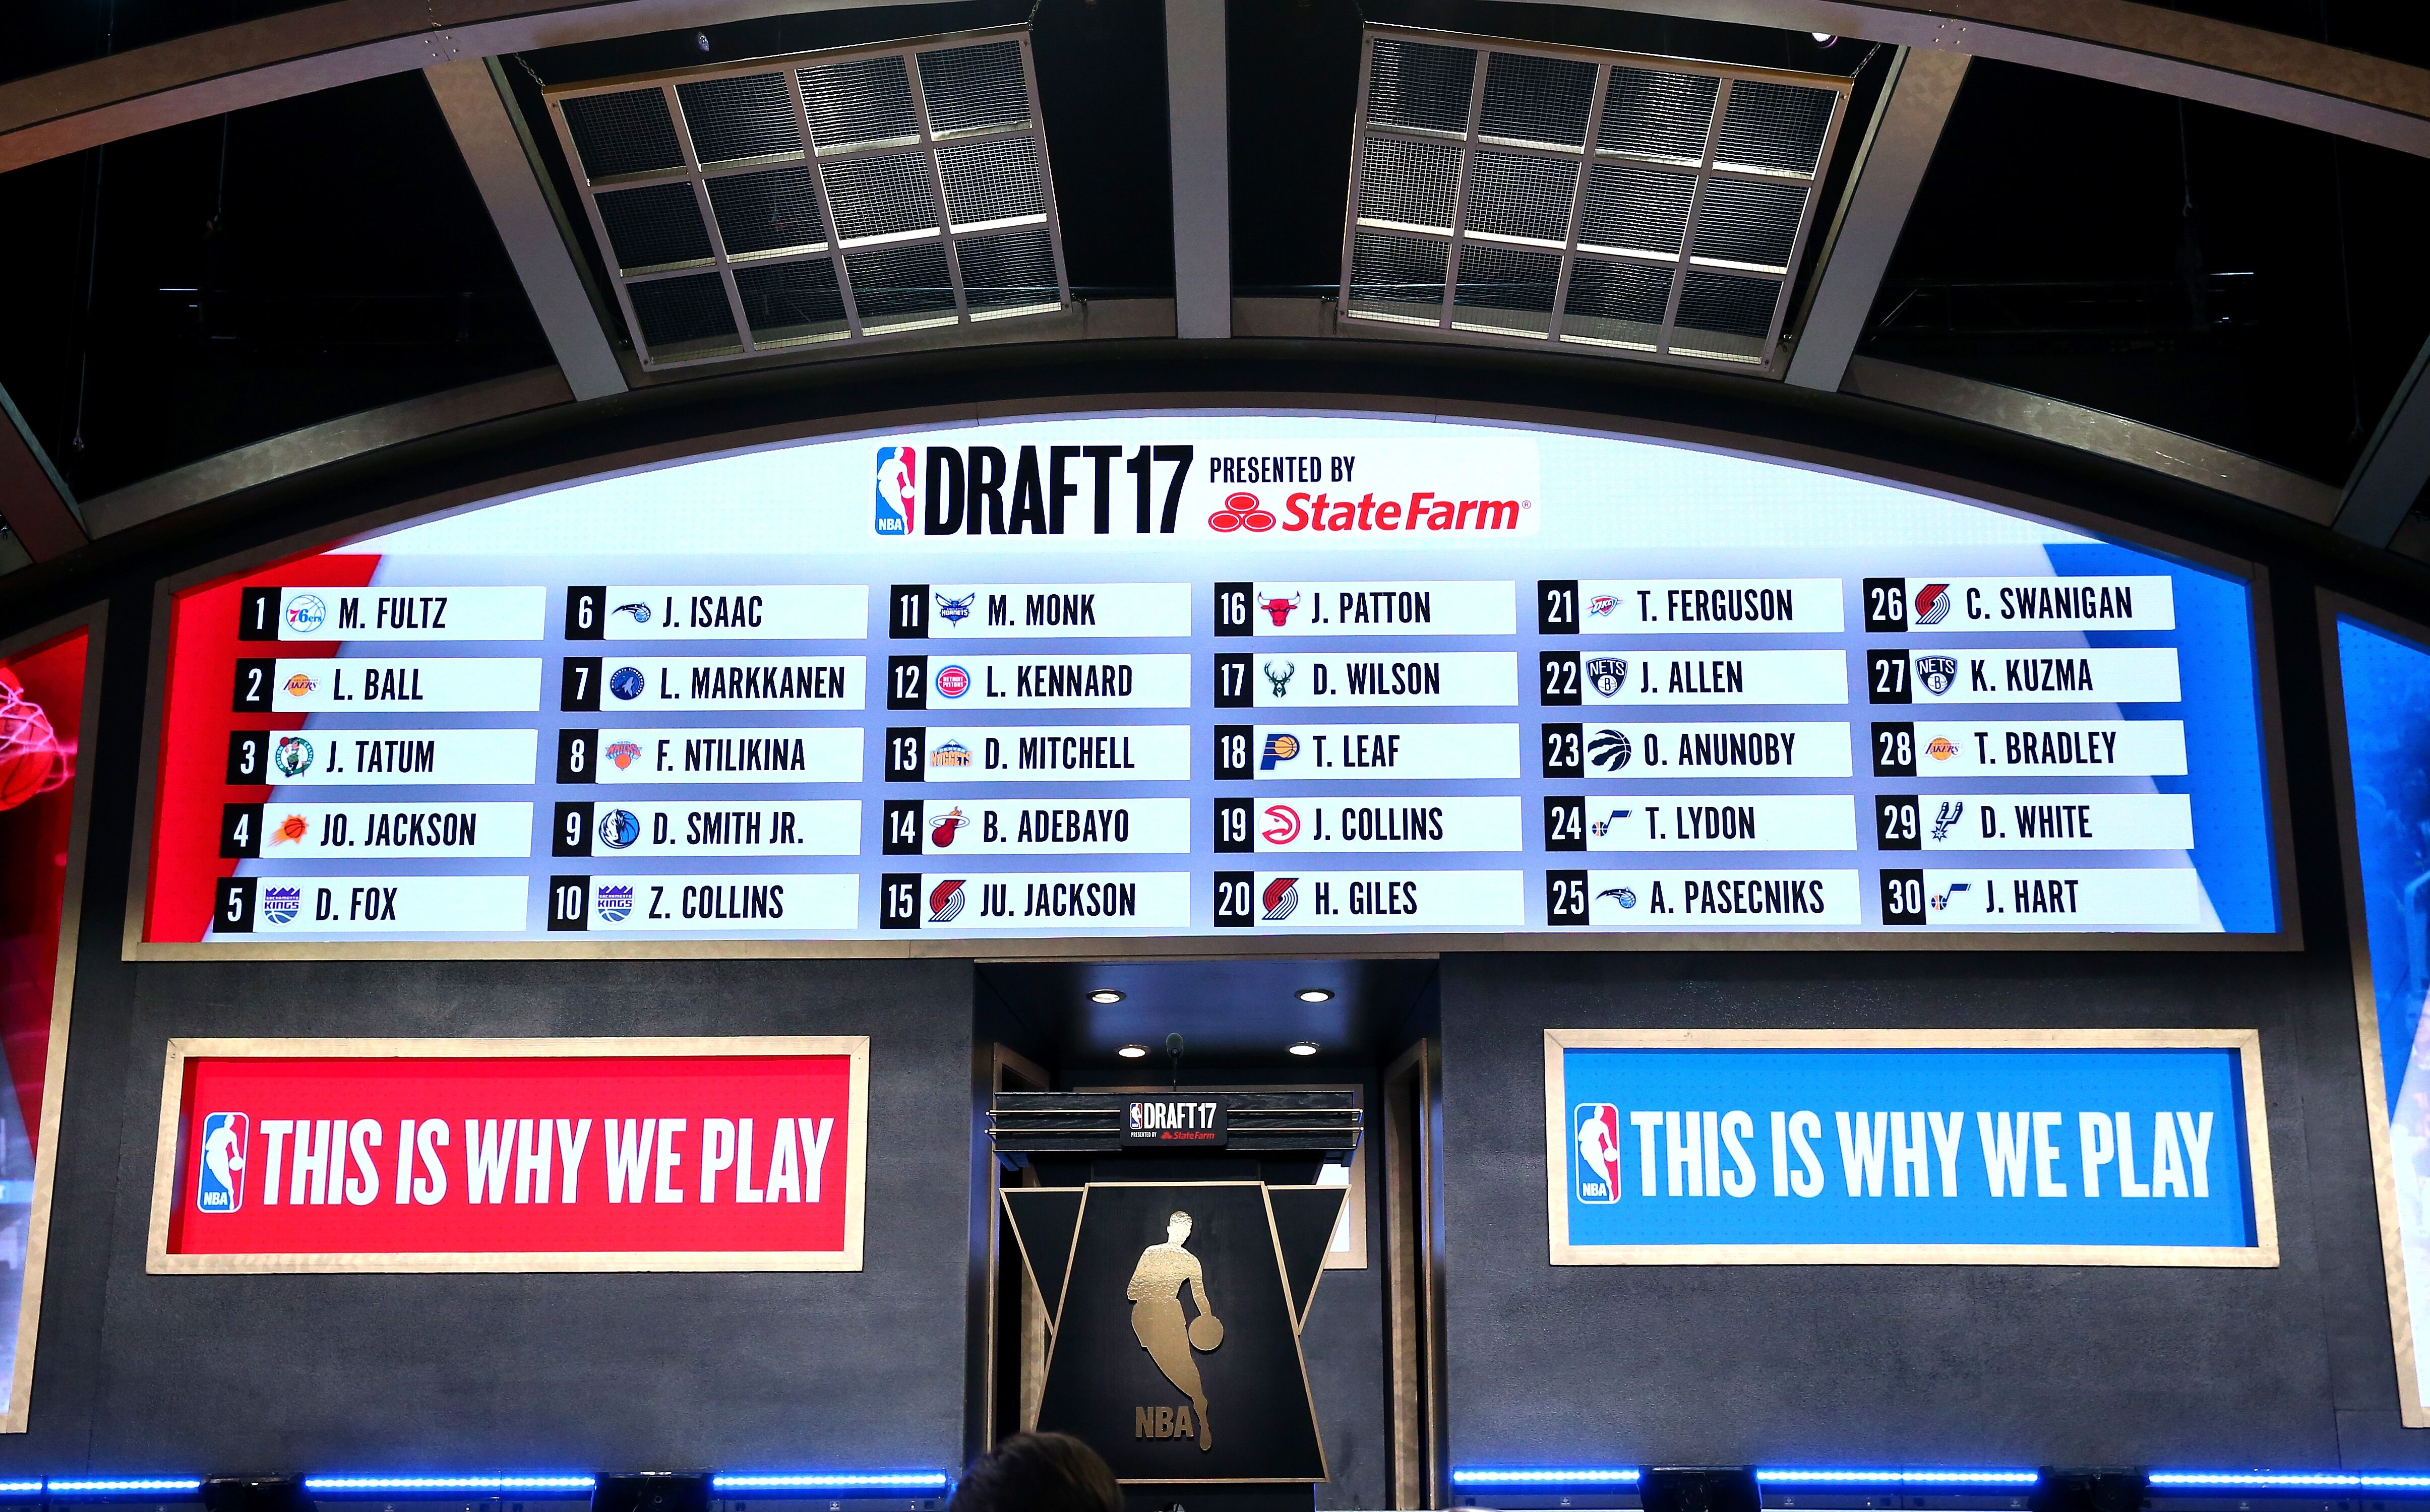 800026658-2017-nba-draft.jpg